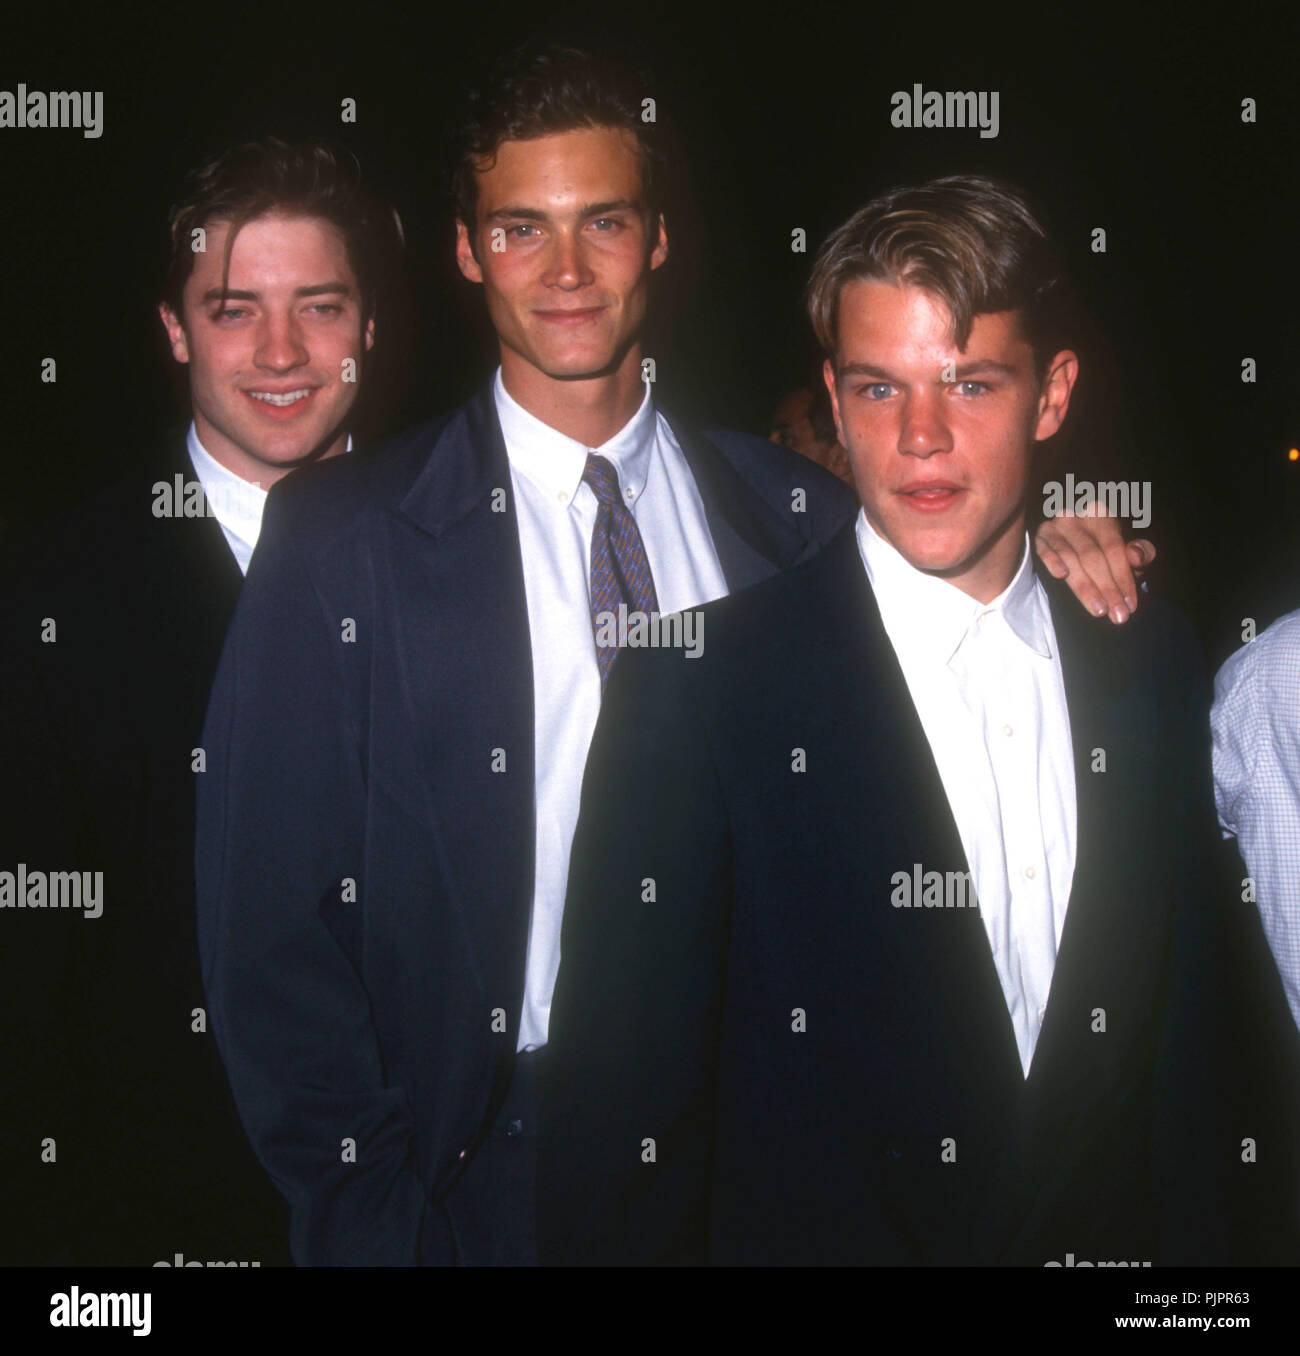 BEVERLY HILLS, CA - SEPTEMBER 11: (L-R) Actors Brendan Fraser, Randall Batinkoff and Matt Damon attend Paramount Pictures' 'School Ties' Beverly Hills Premiere on September 11, 1992 at the Academy Theatre in Beverly Hills, California. Photo by Barry King/Alamy Stock Photo Stock Photo